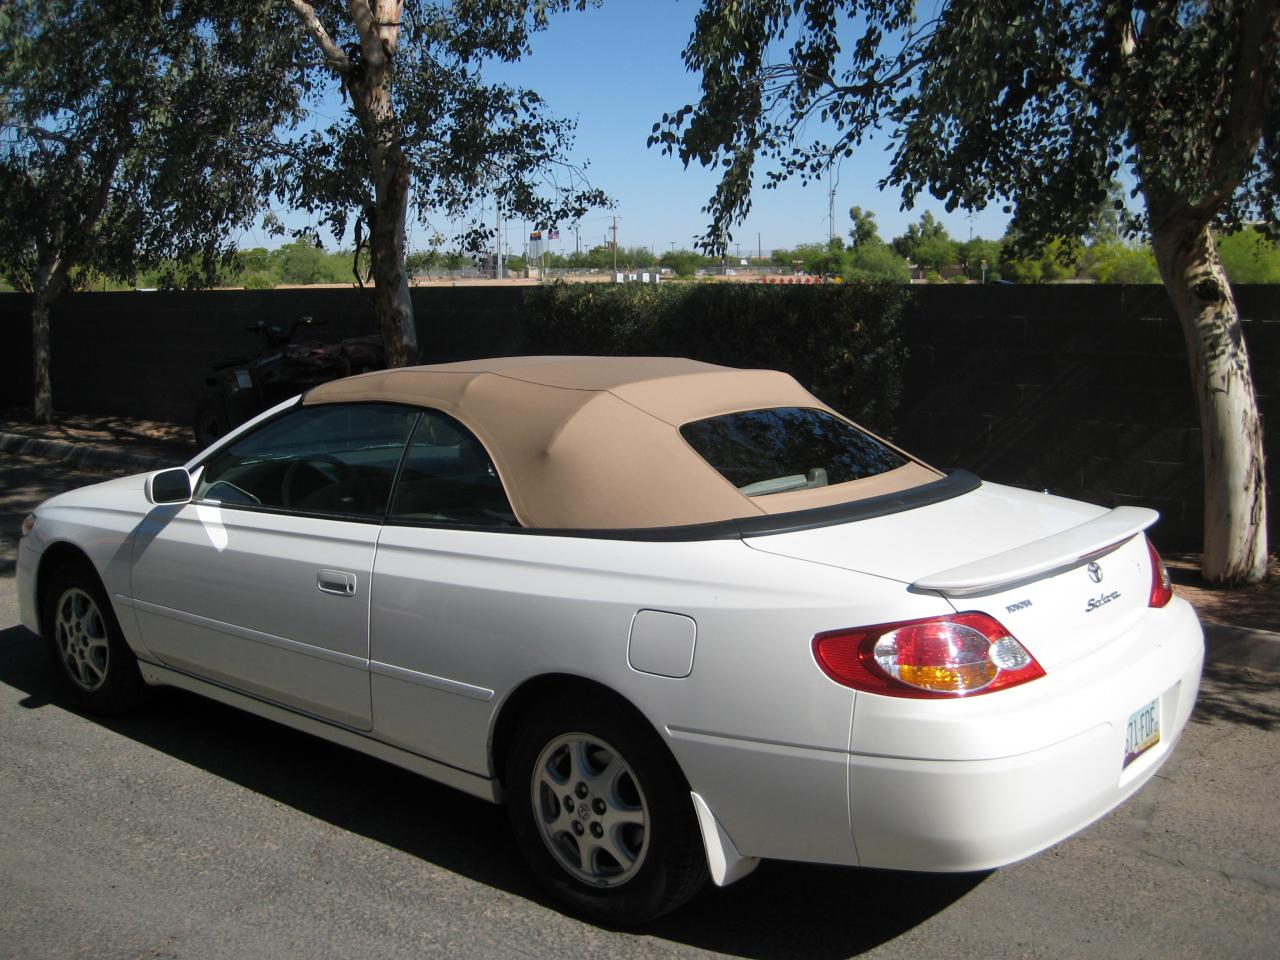 Robbins Convertible Top Replacement On A Solara